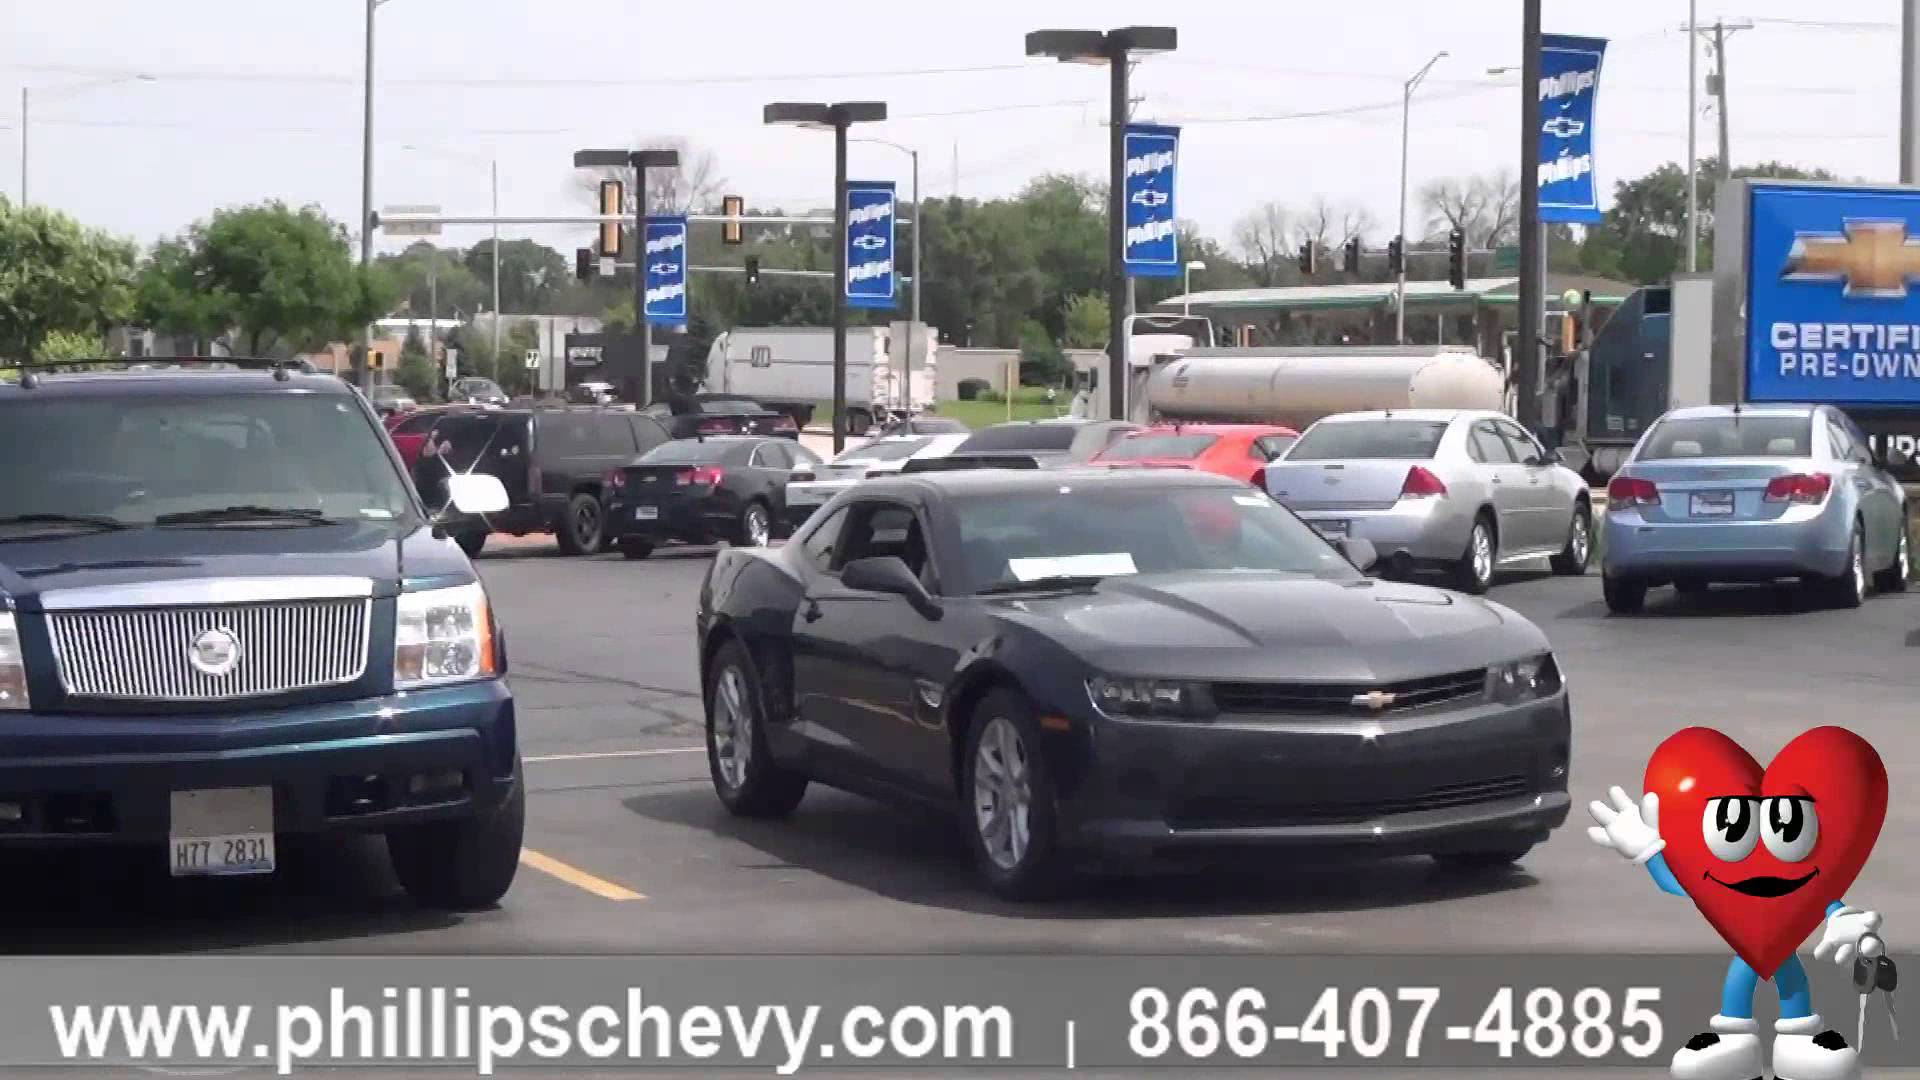 phillips chevrolet used car lot tour used car dealer sales chicago